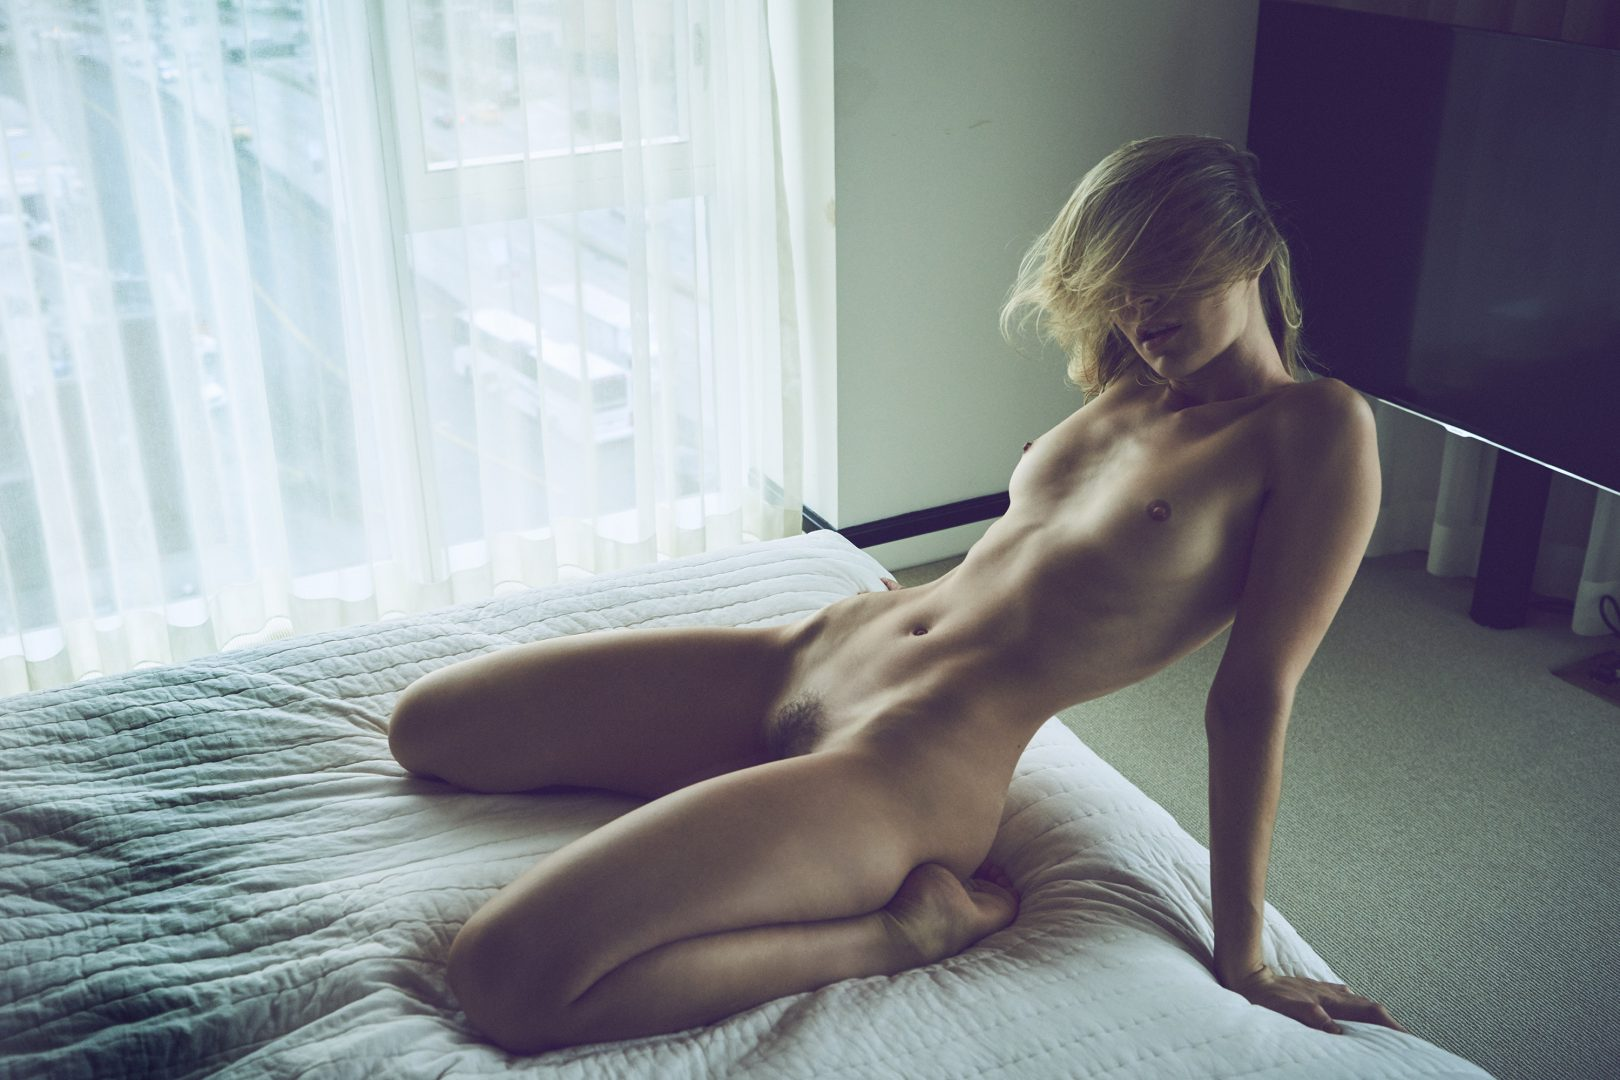 Naked girl sitting on bed in hotel room by Stefan Rappo